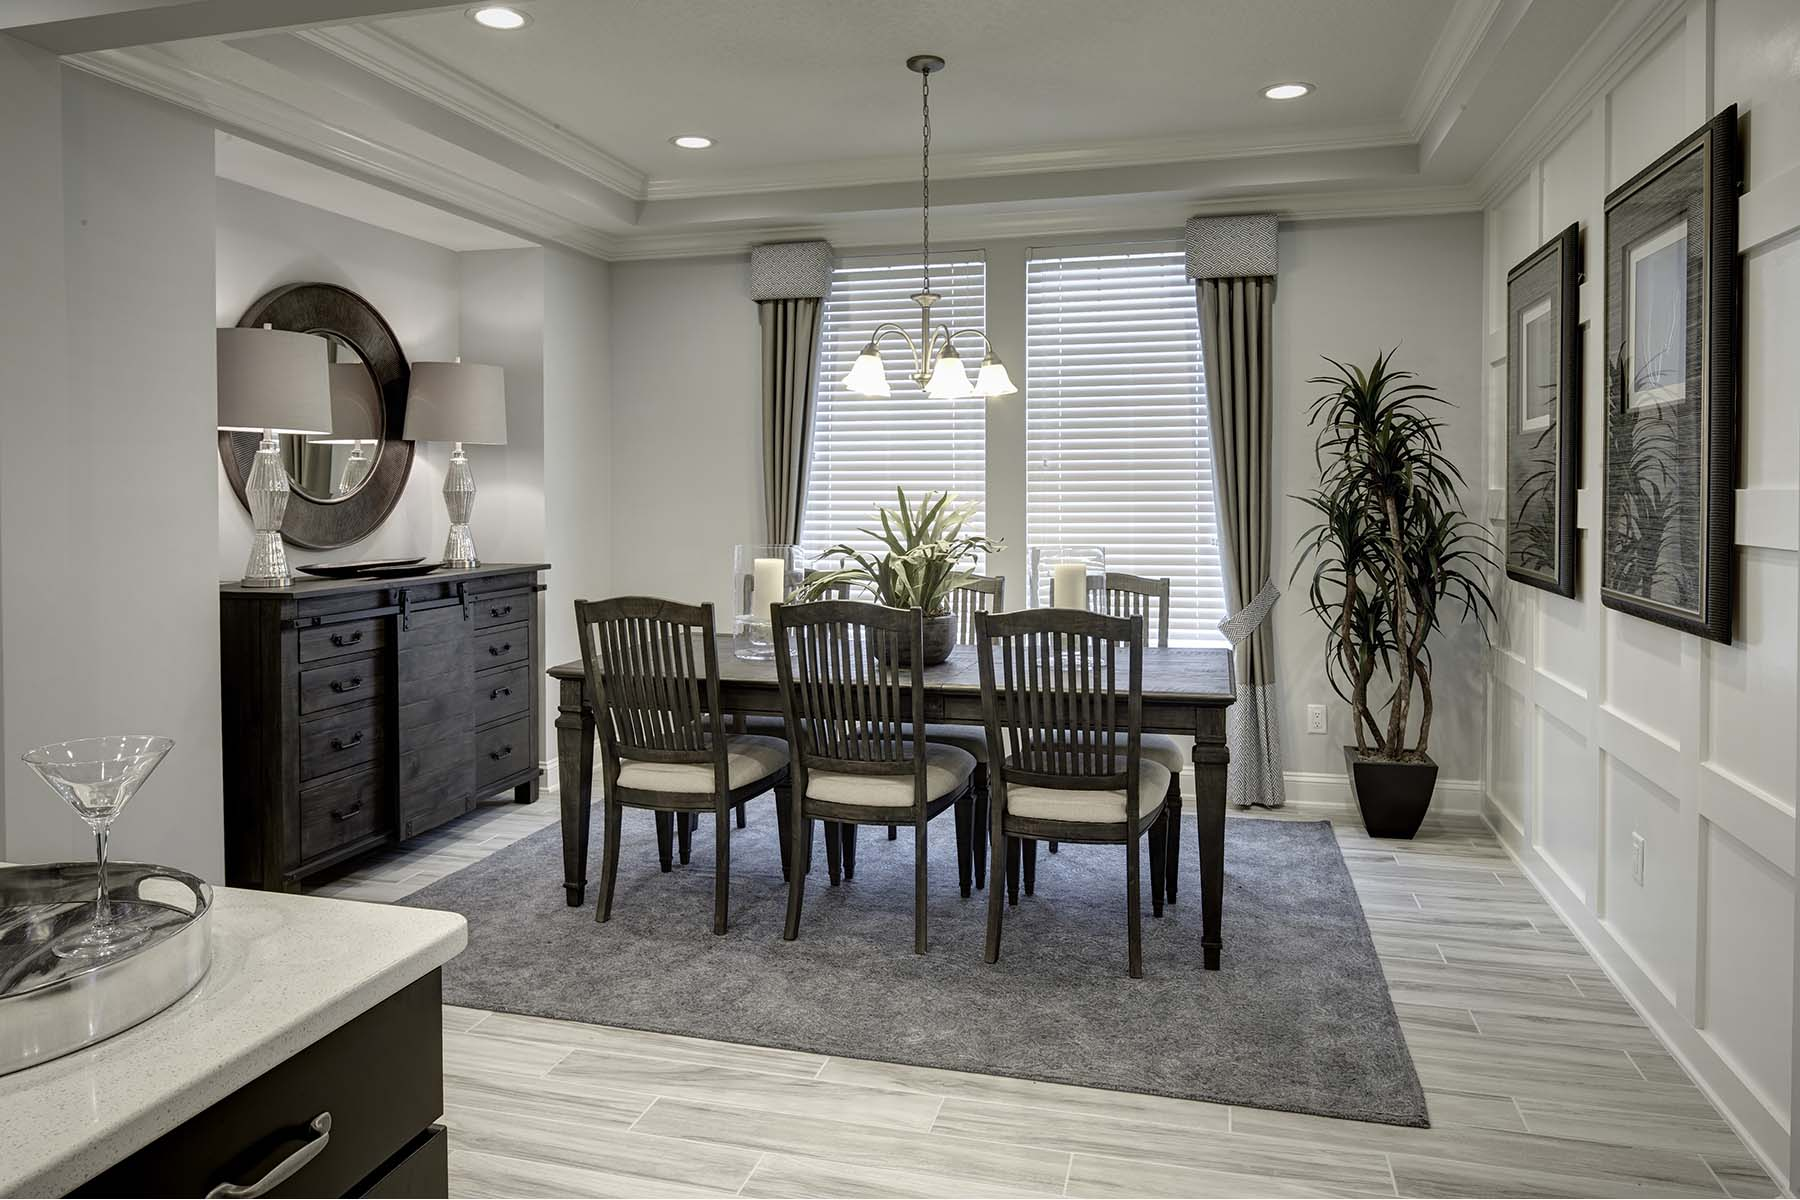 Egret Plan Dining at RiverTown - Arbors in St. Johns Florida by Mattamy Homes